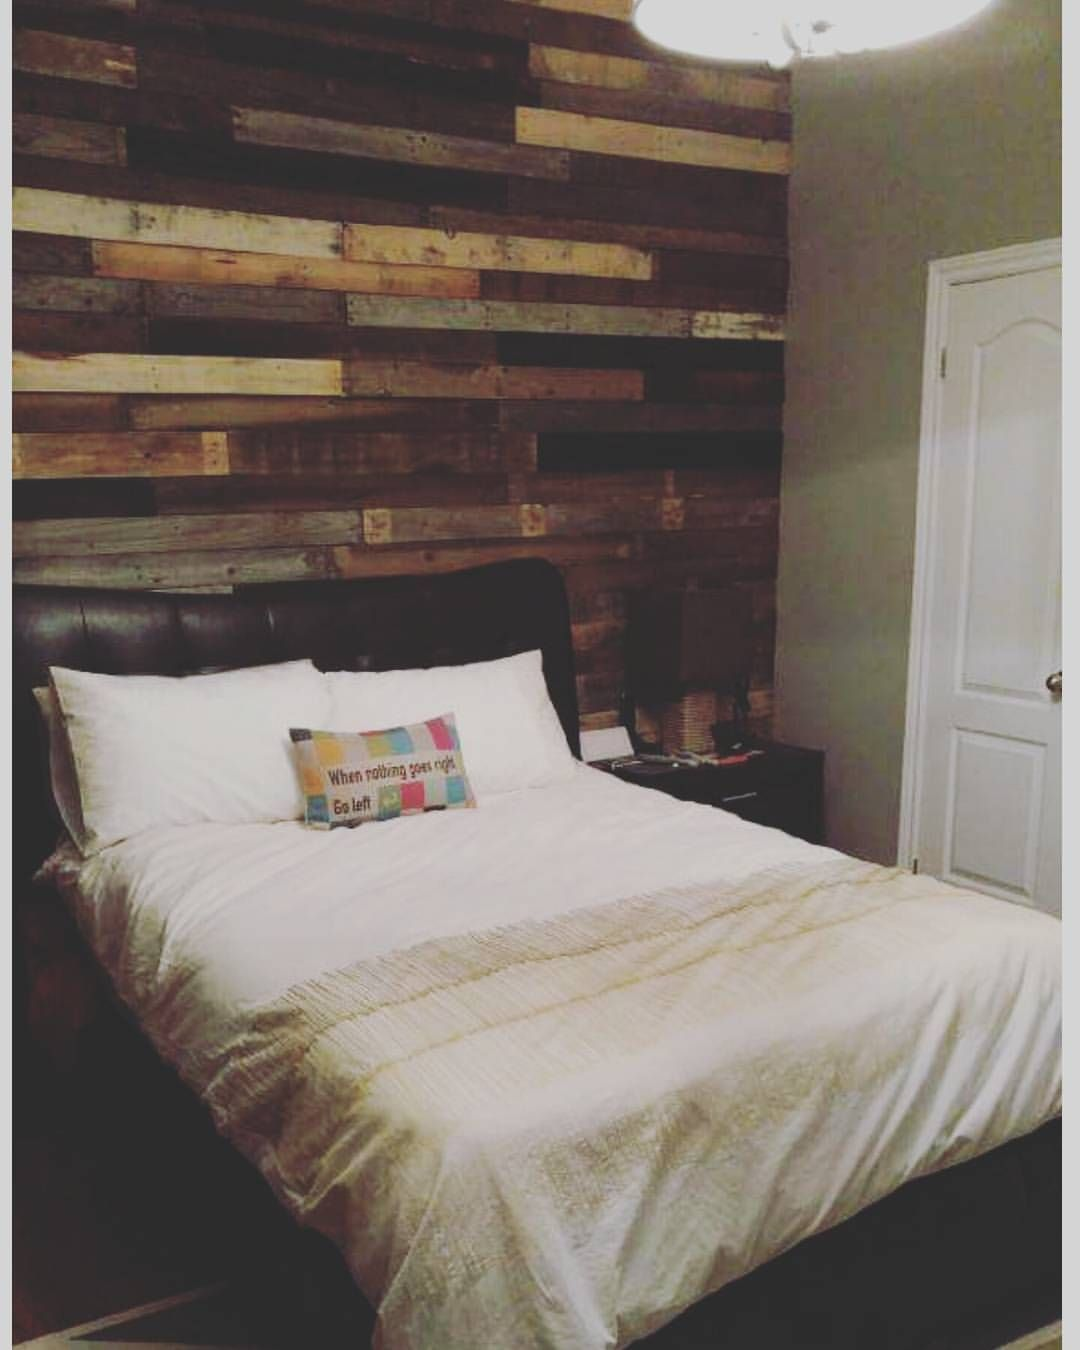 Diagonal Wood Pallet Accent Wall: Reclaimed Pallet Wood Accent Wall. Love The Variation In